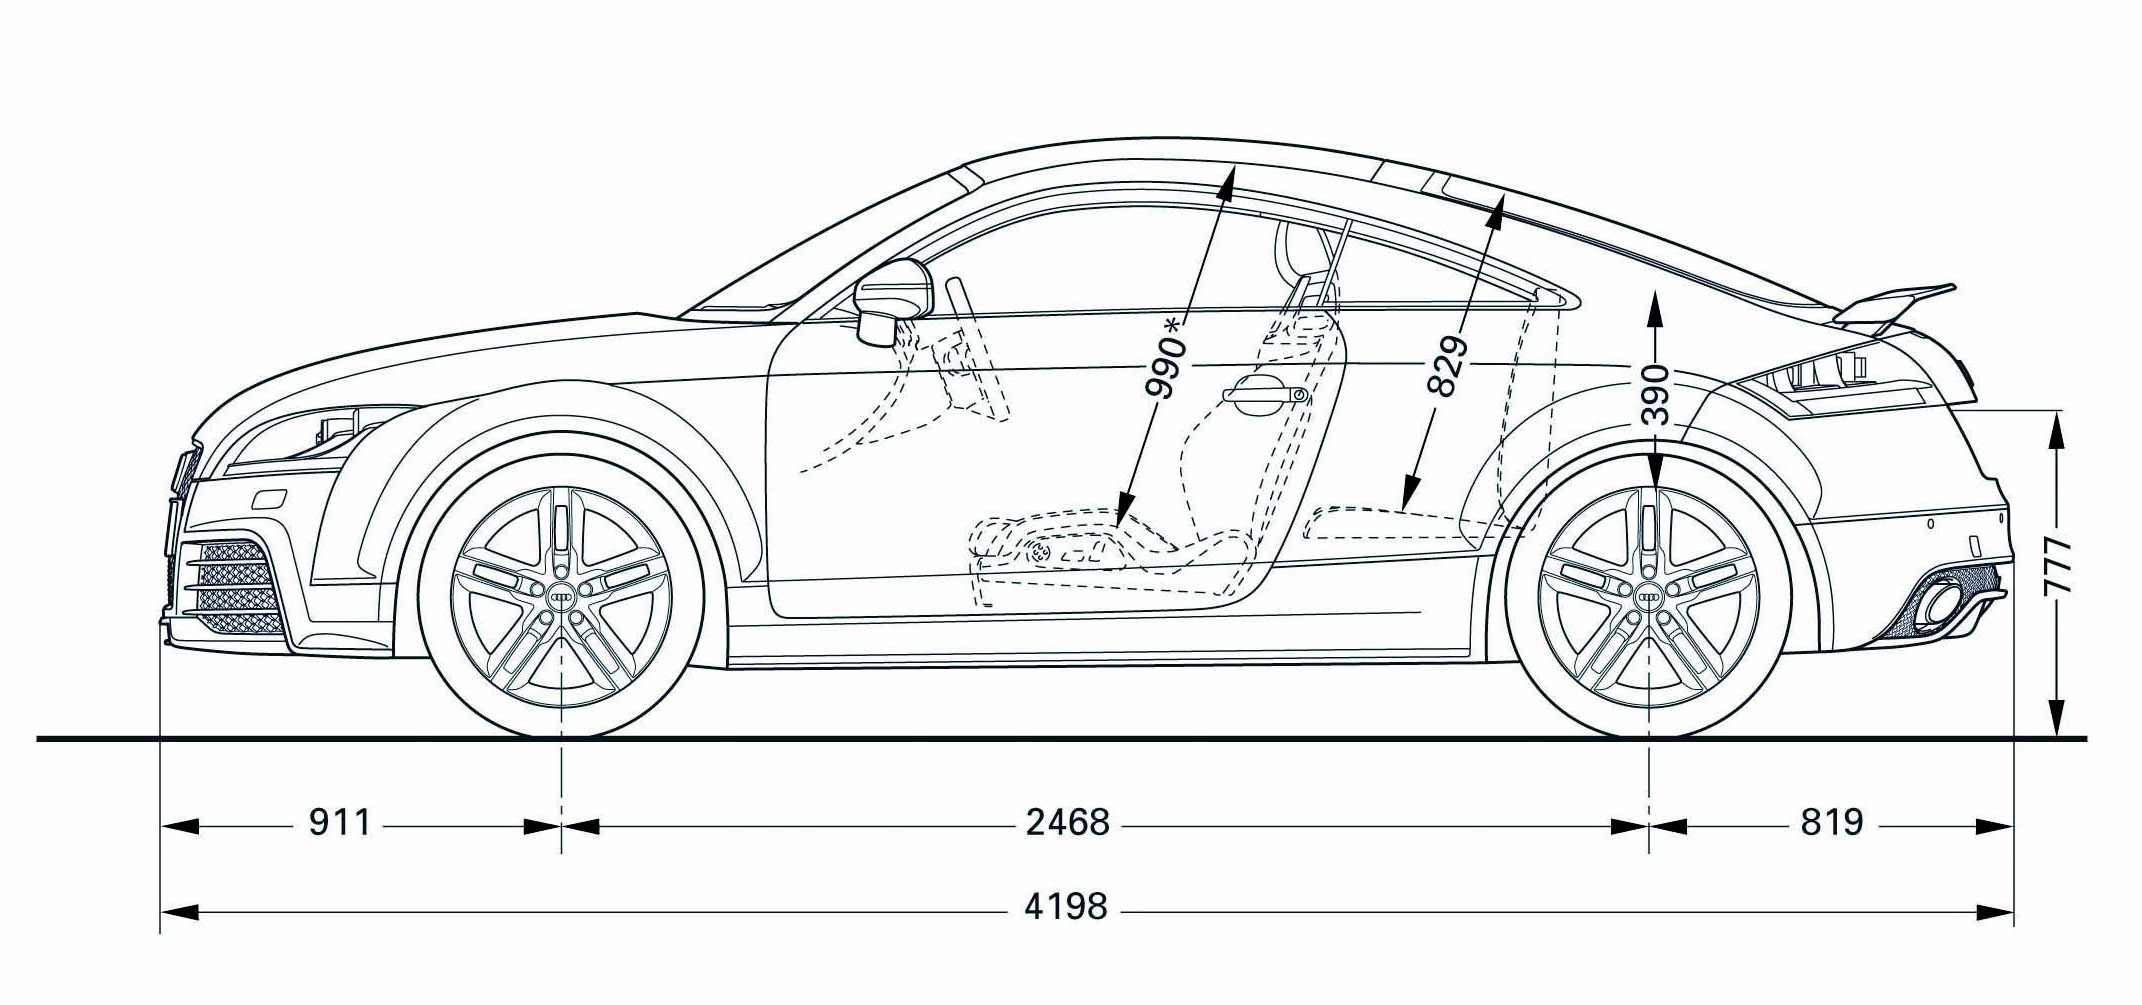 porsche wiring diagrams 911 with Audi Tt Rs Coupe  2012 on 341855 Lets Play Name Vibration further Wiring Diagram 1988 Porsche 911 in addition Audi tt rs coupe  2012 furthermore 288567 Power Window Switch Schematic moreover 996 Coolant Flow Diagram.